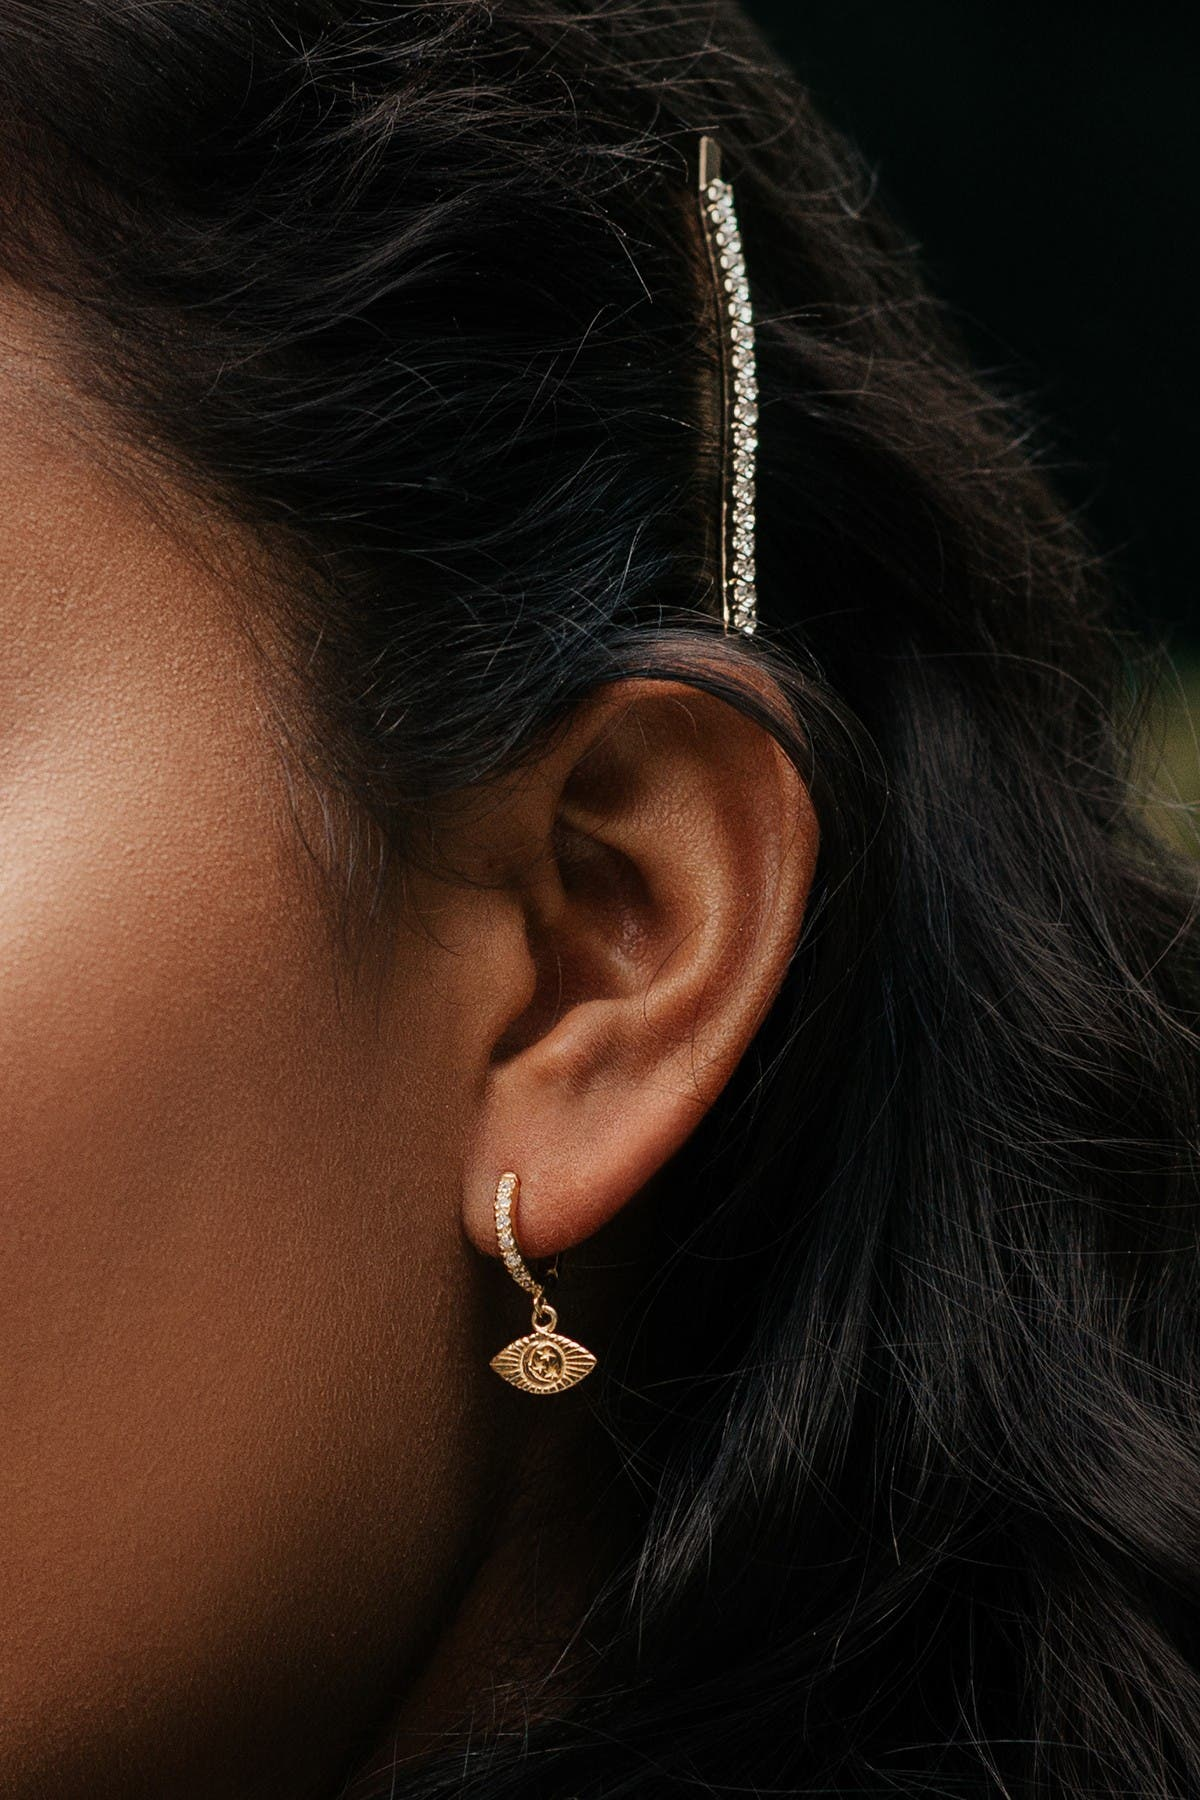 Sterling Forever 14K Gold Plated Sterling Silver CZ Starry Nights Micro Hoop Earrings